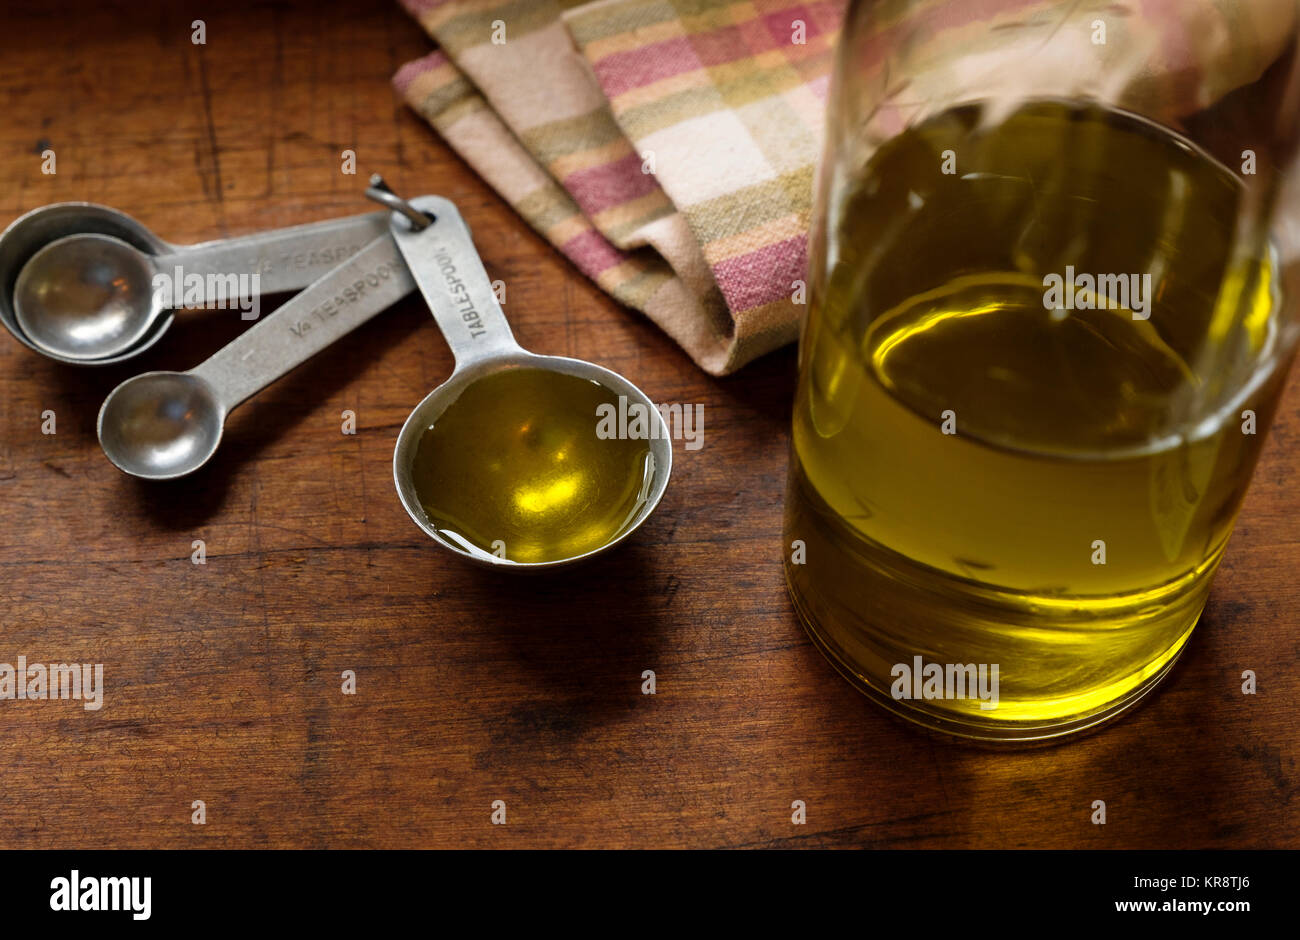 Measuring spoon, olive oil and napkin - Stock Image